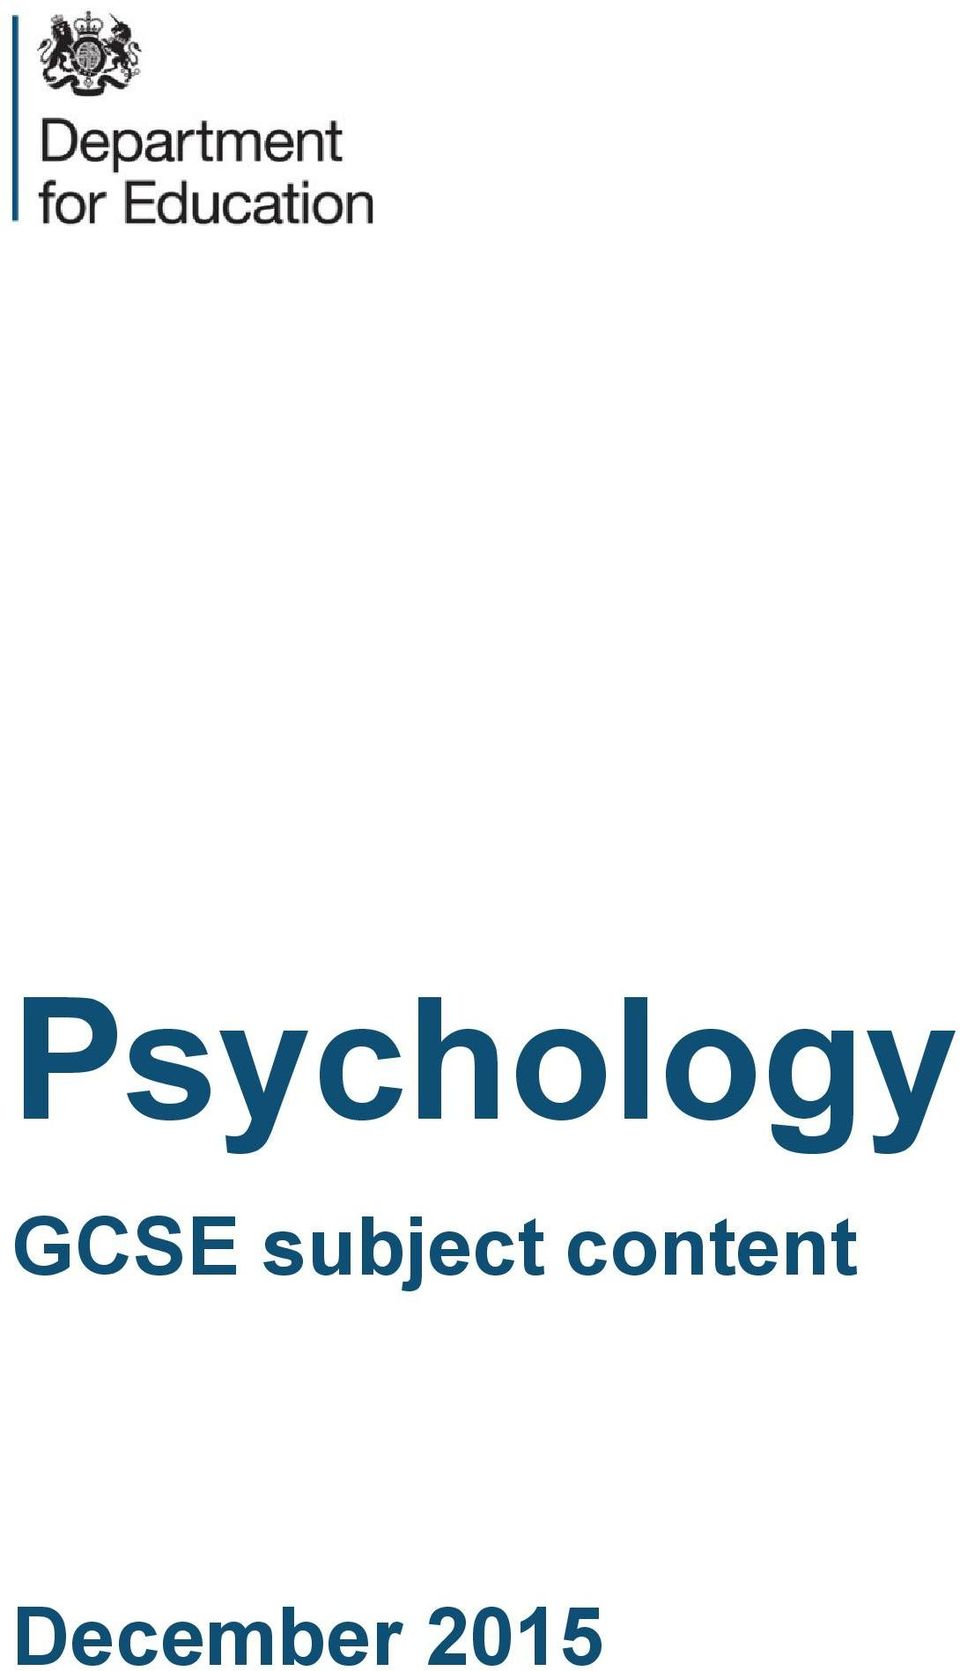 psychology coursework gcse Study gcse psychology online at interhigh – the uk's leading online school igcse psychology is one of many subjects, taught by our expert faculty study gcse psychology online at interhigh – the uk's leading online school.